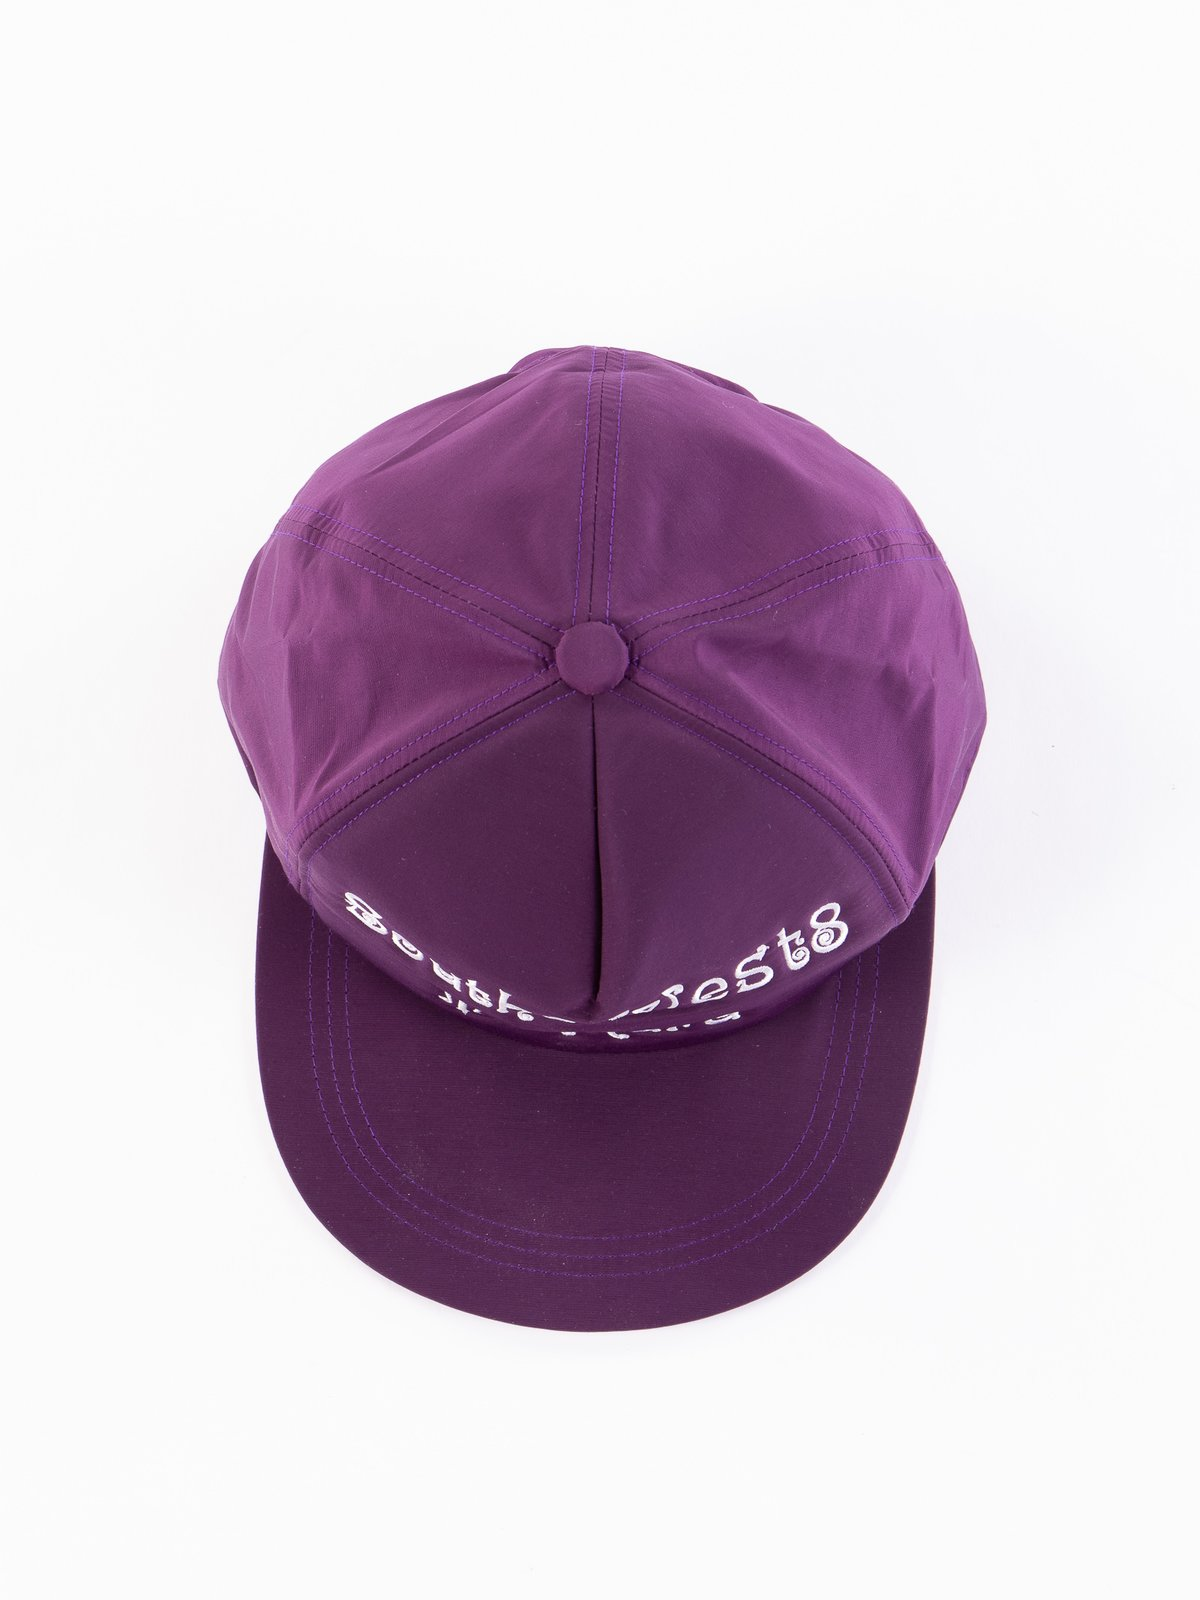 Purple Tenkara Embroidered Trucker Cap - Image 3